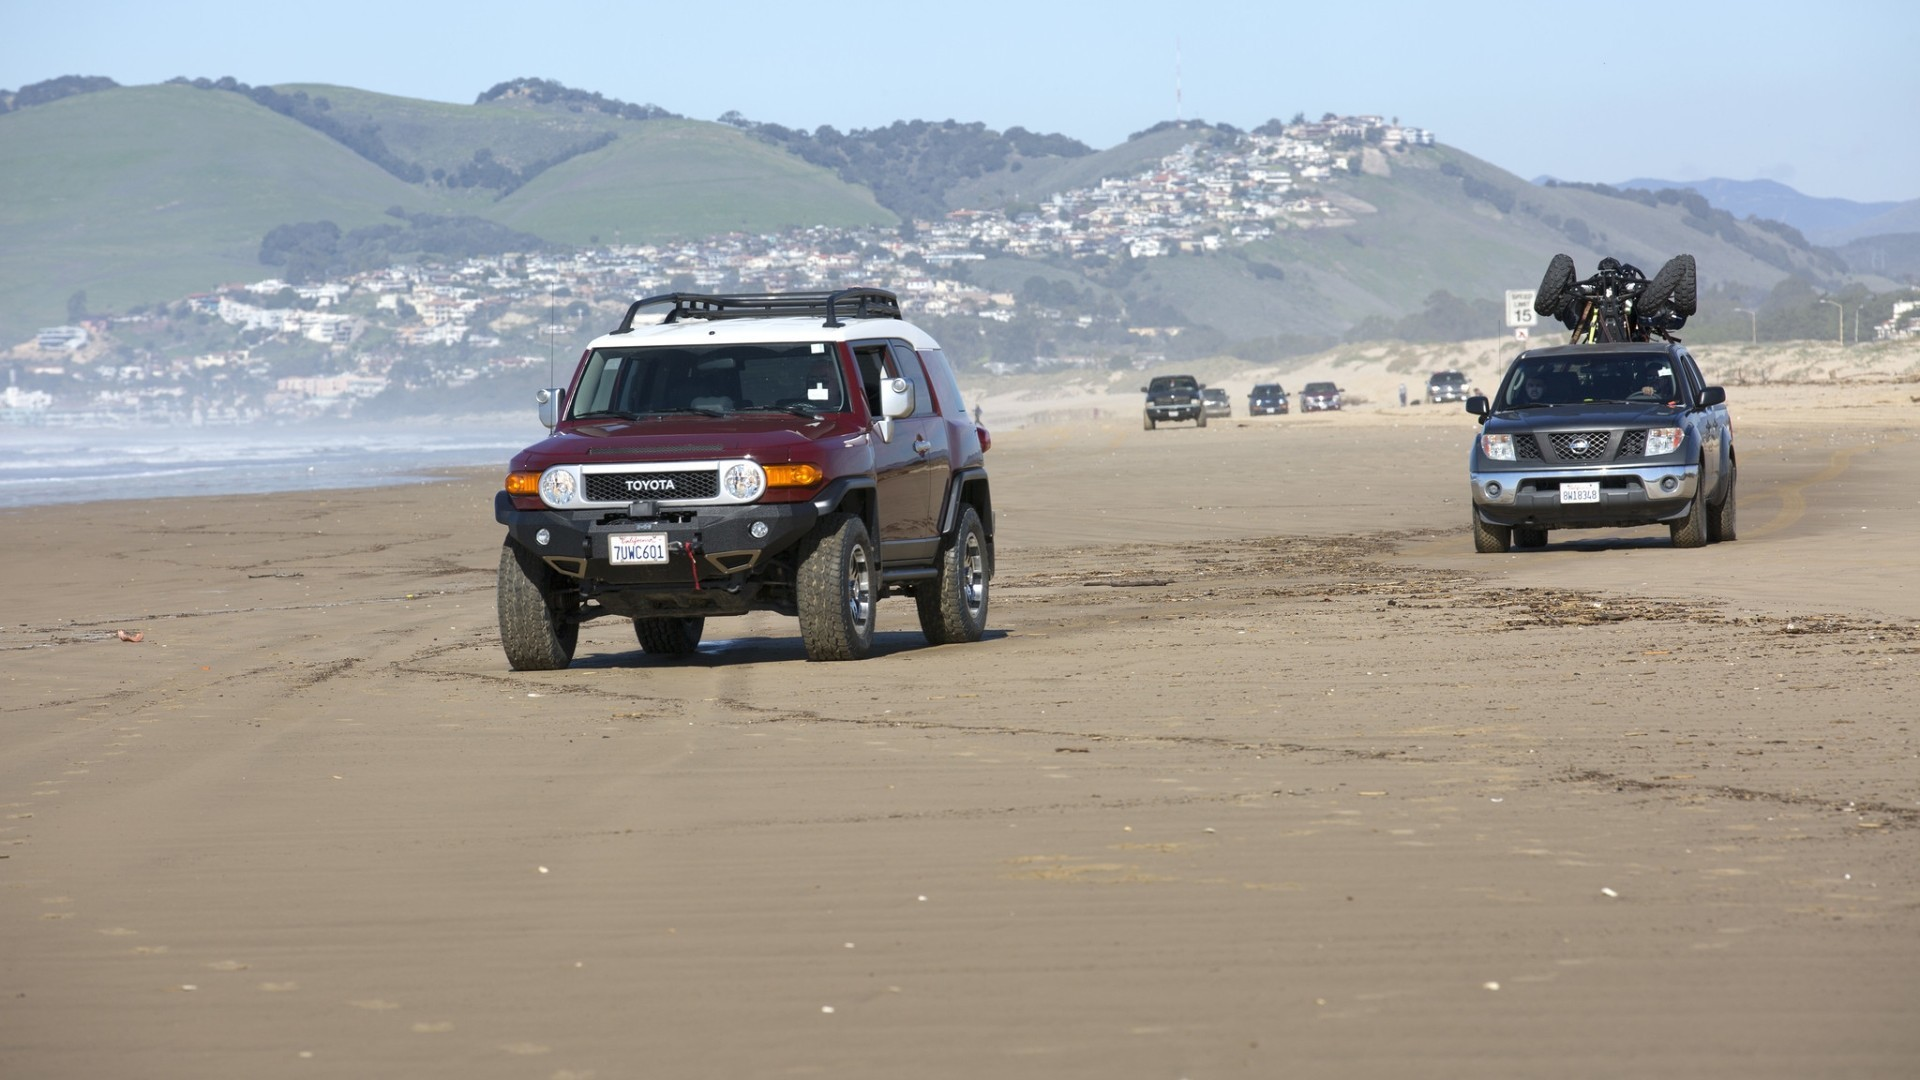 Off Roading Near Me >> State agencies feud over off-roading along seaside dunes - LA Times